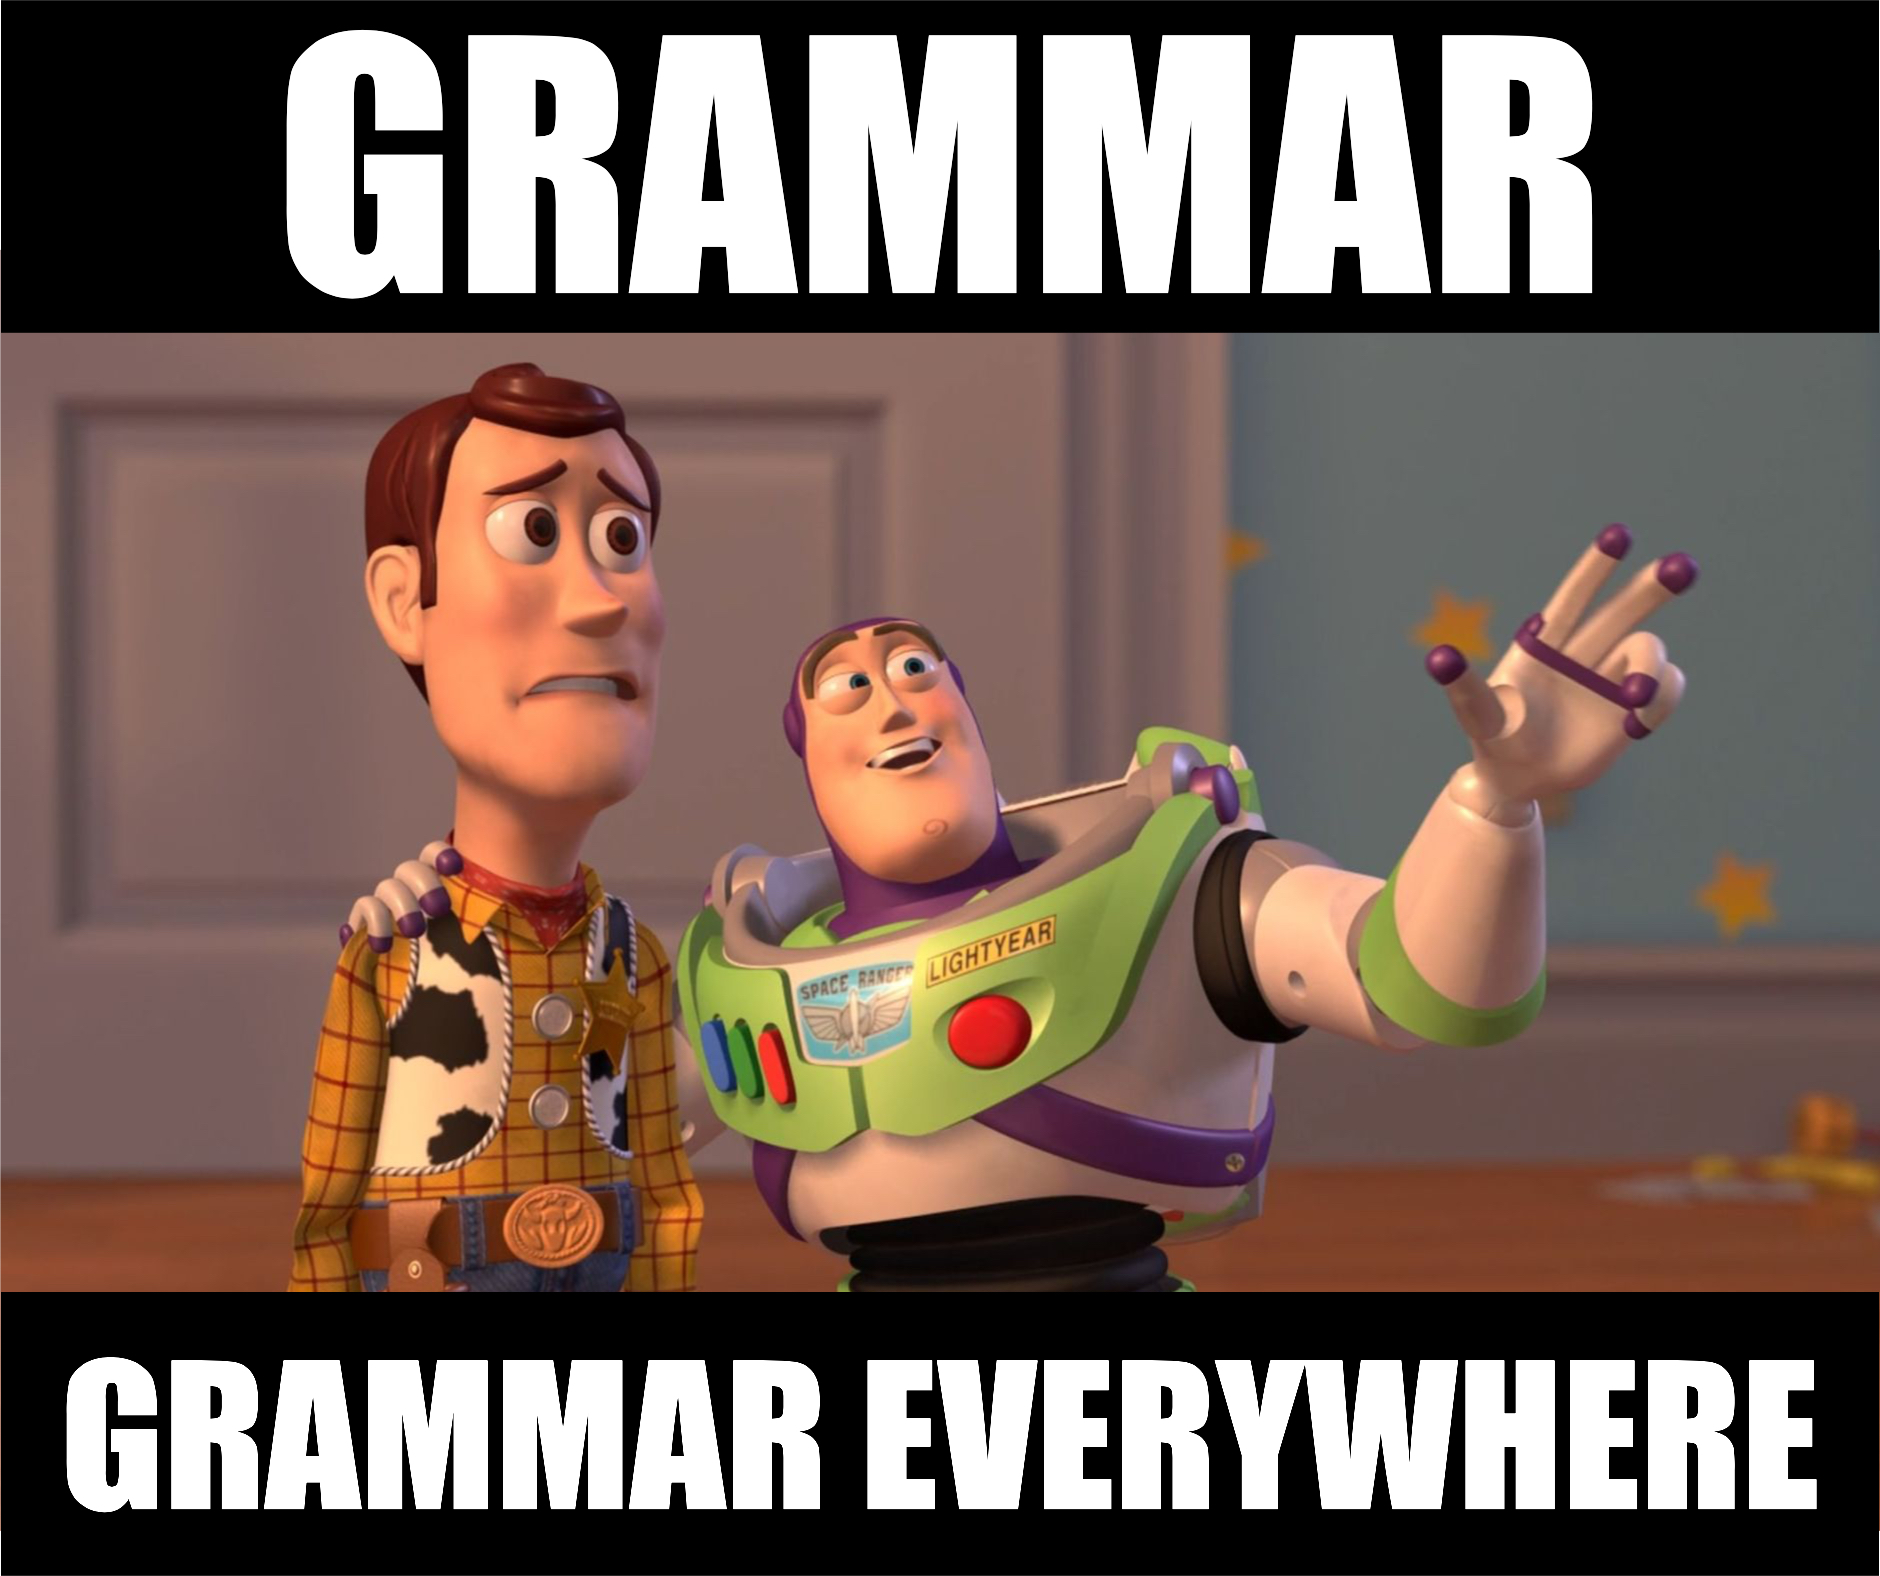 english grammar everywhere